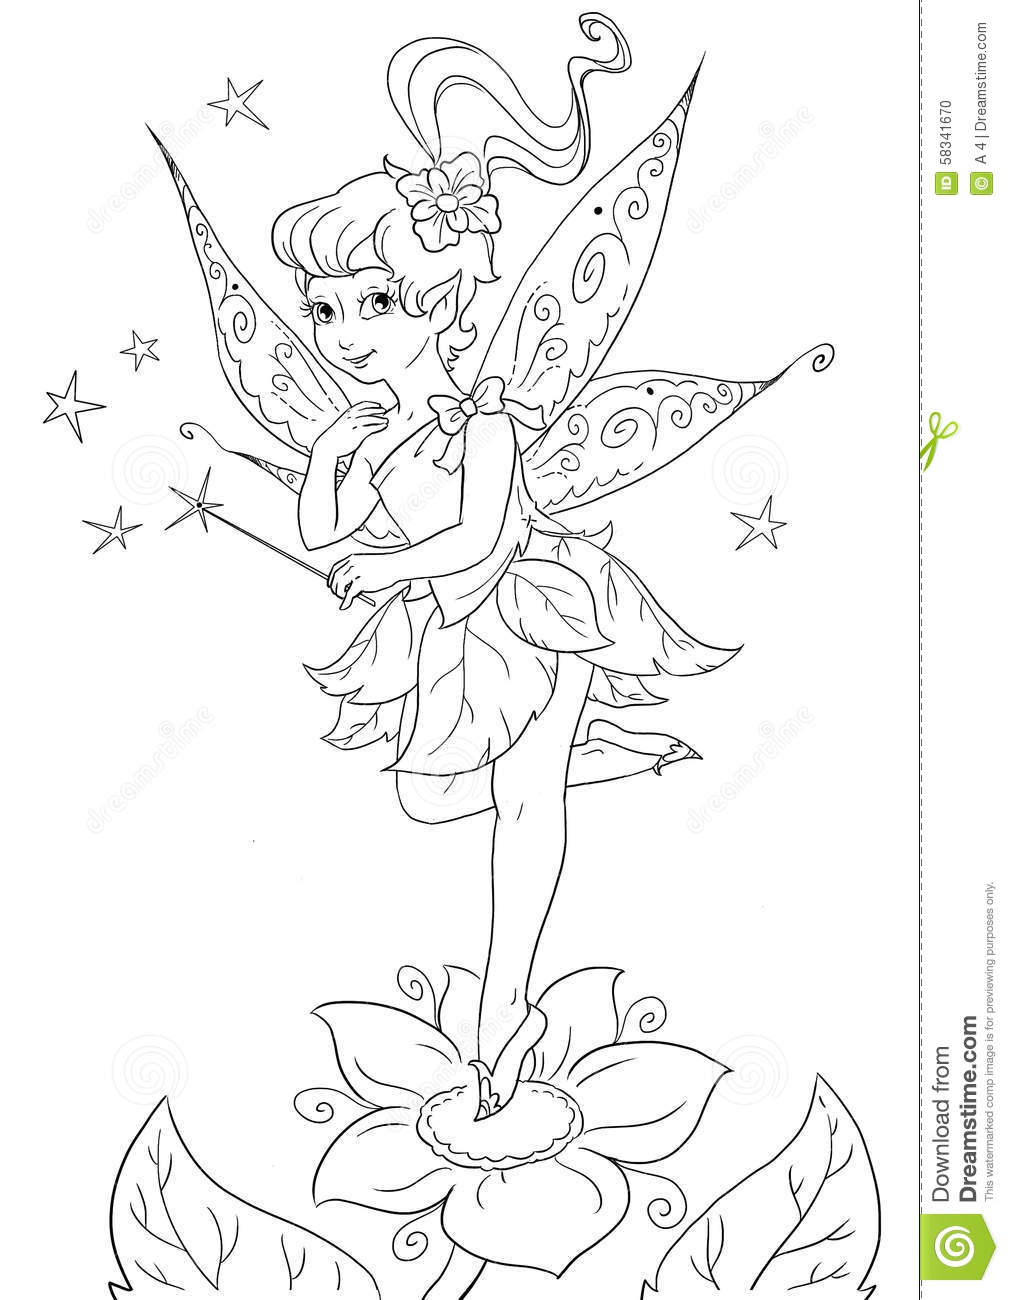 Flower Fairy Coloring Page Stock Illustration - Illustration of ...